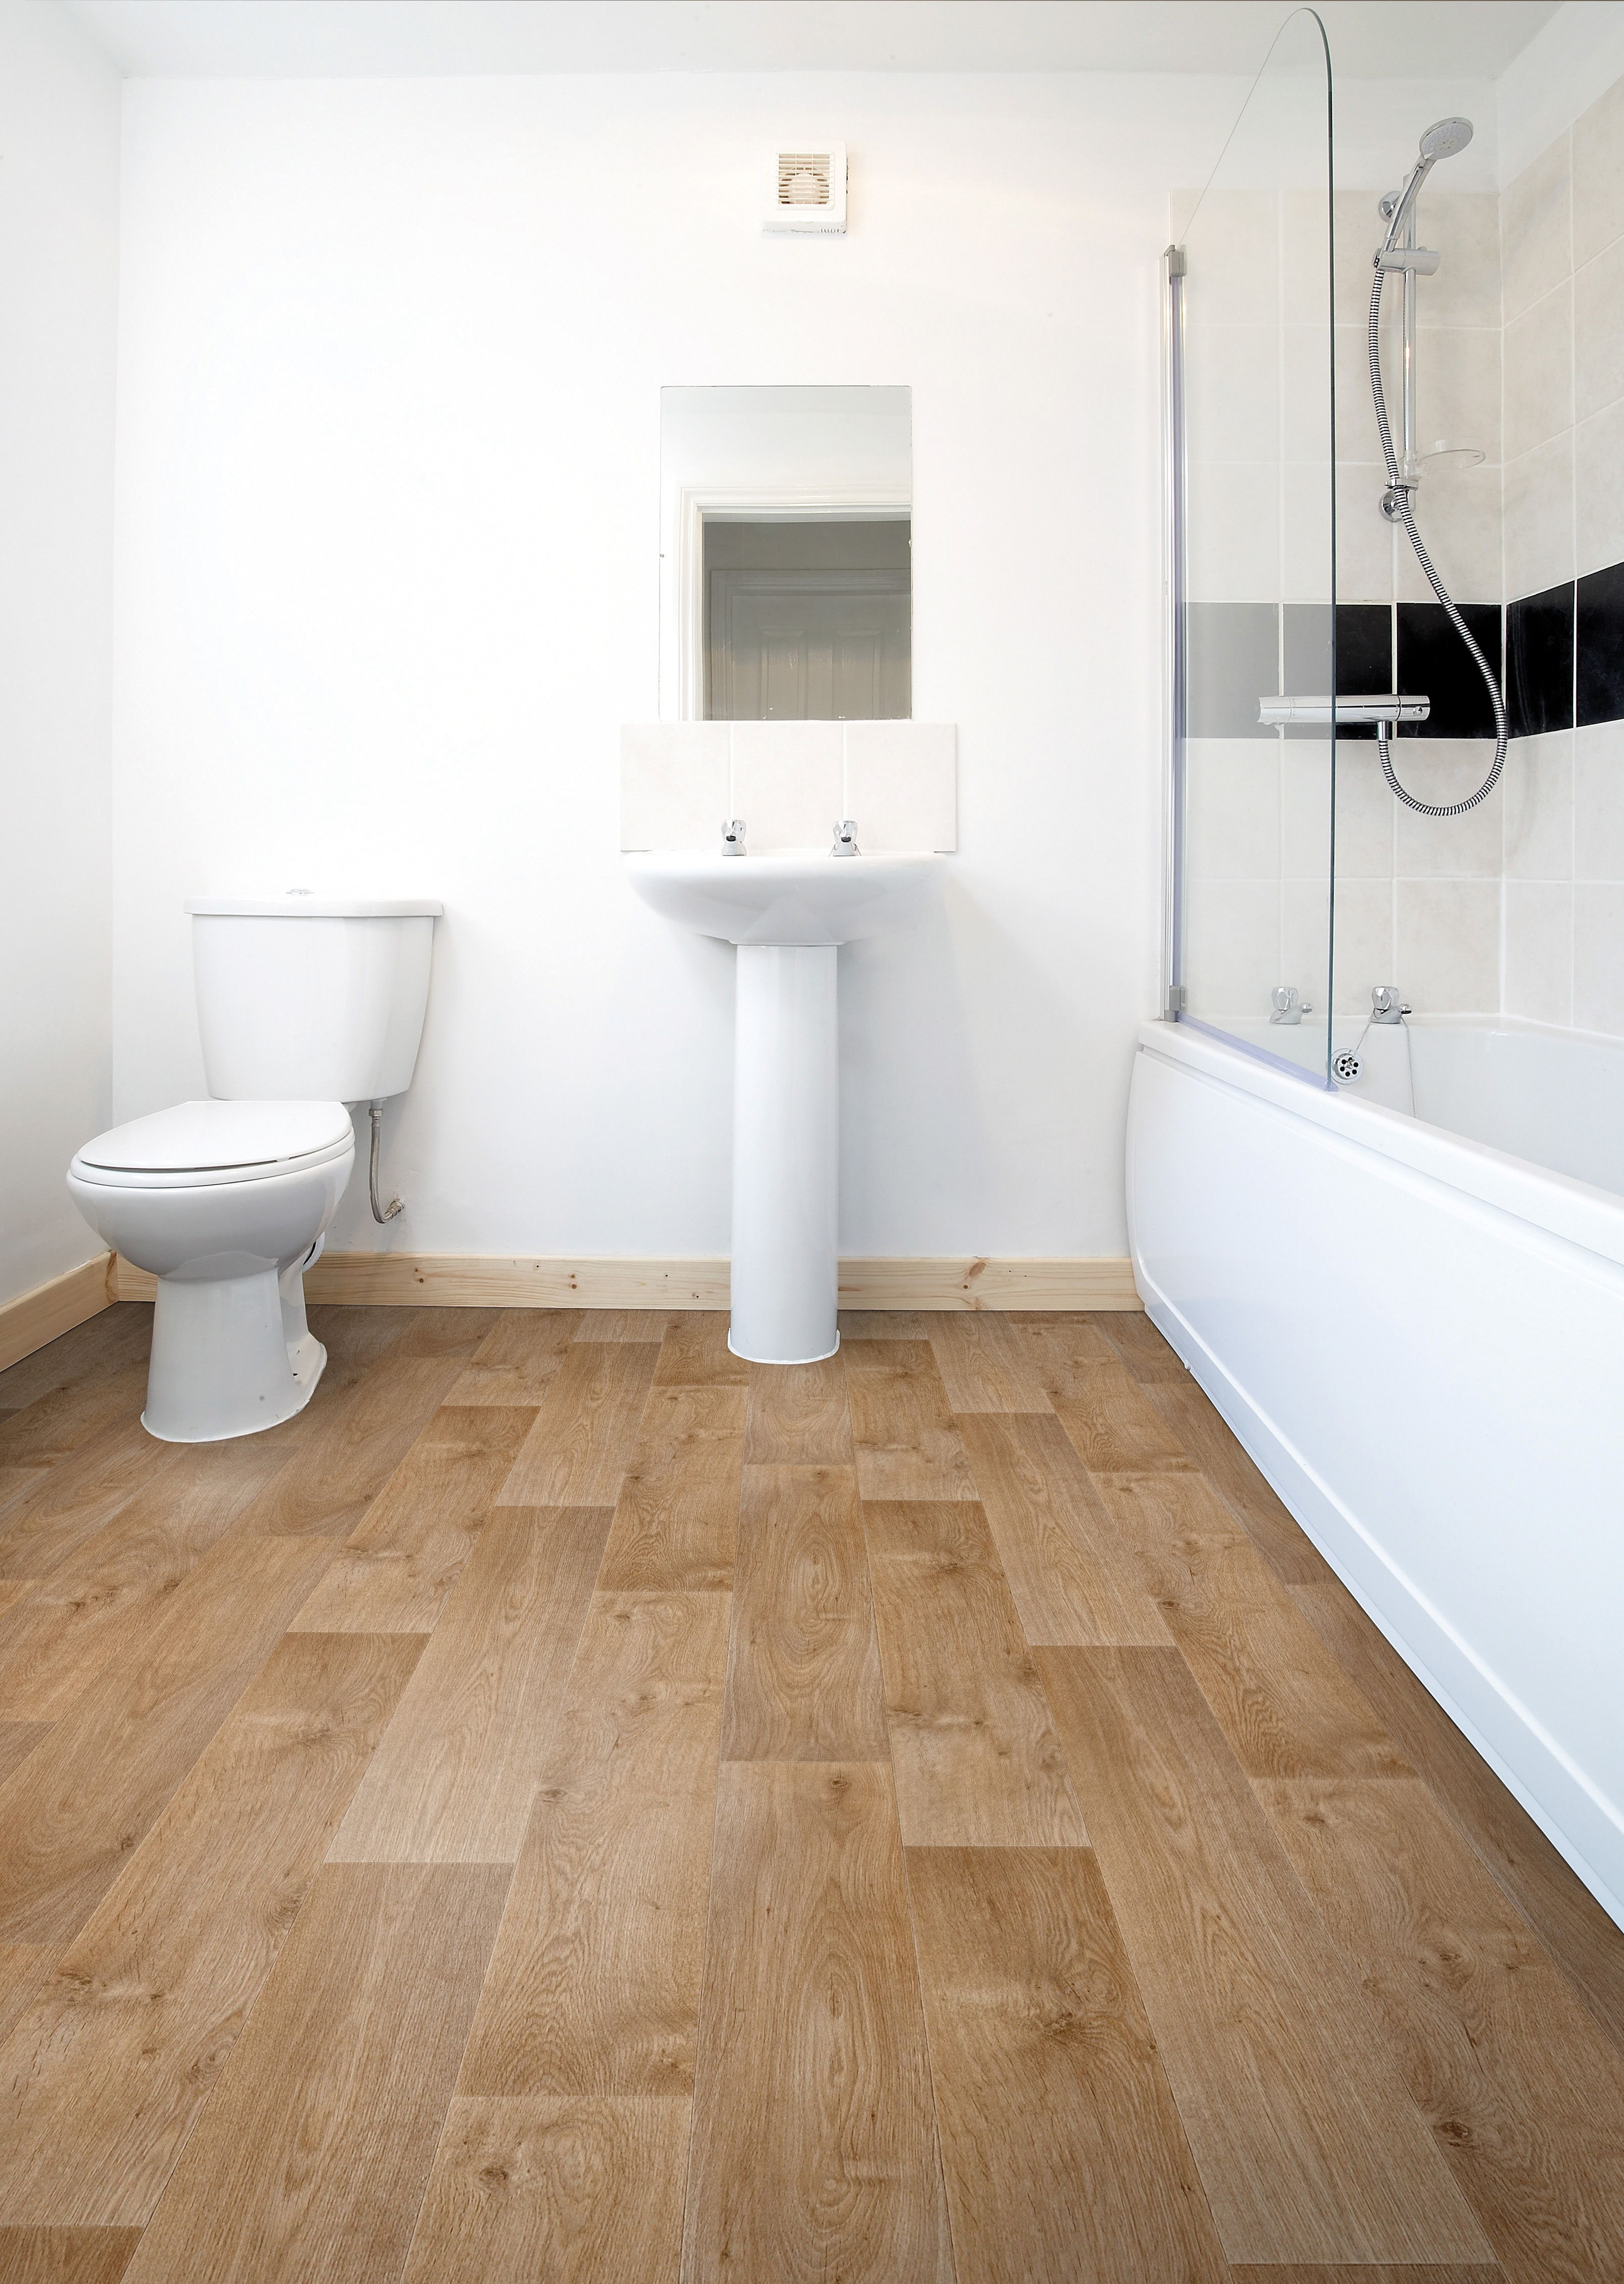 #SocialHousing flooring in #Wood design